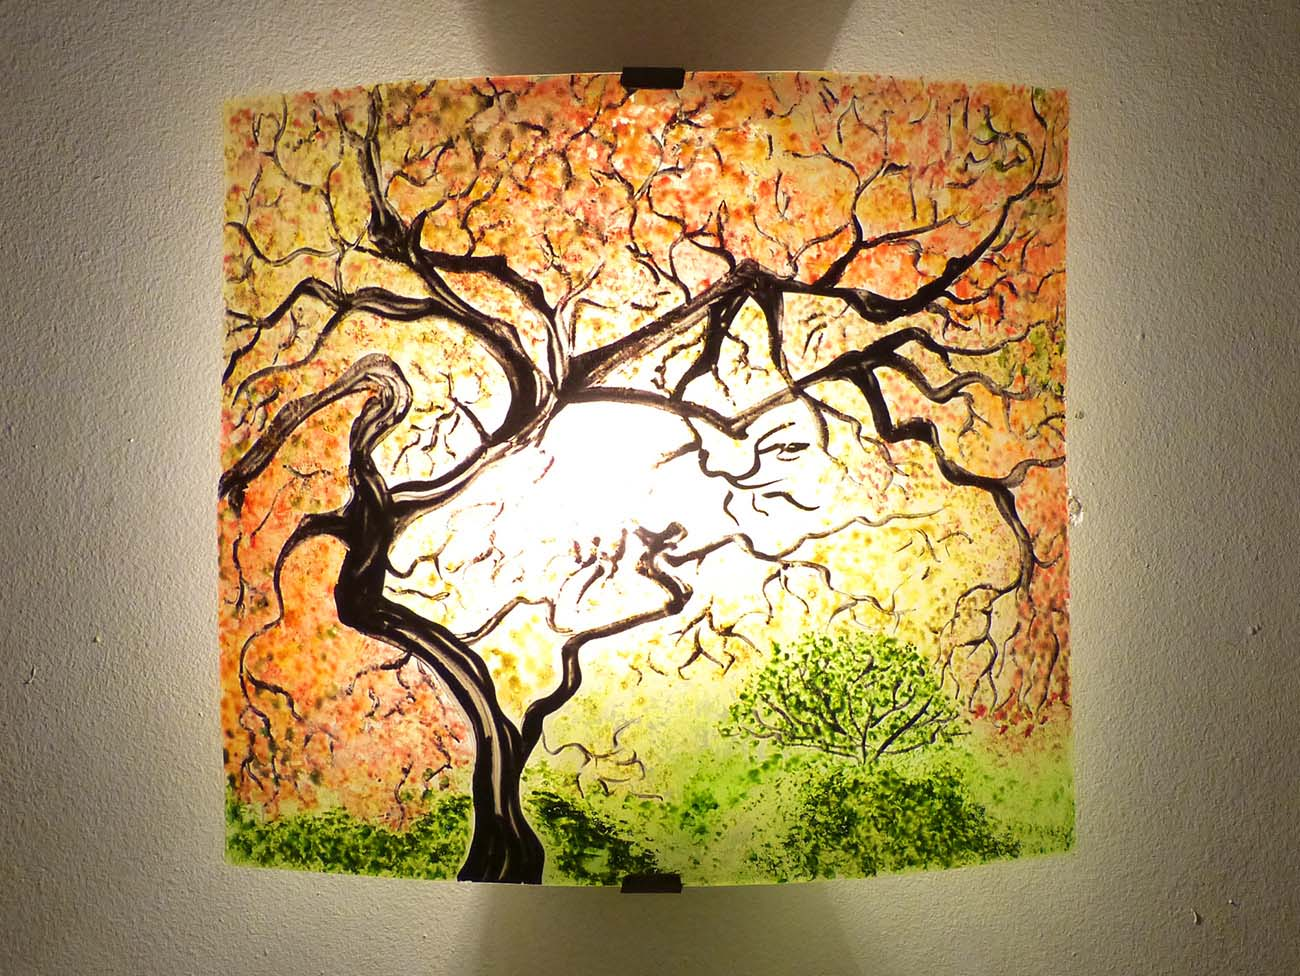 luminaire applique murale paysage arbre jaune orange et vert. Black Bedroom Furniture Sets. Home Design Ideas